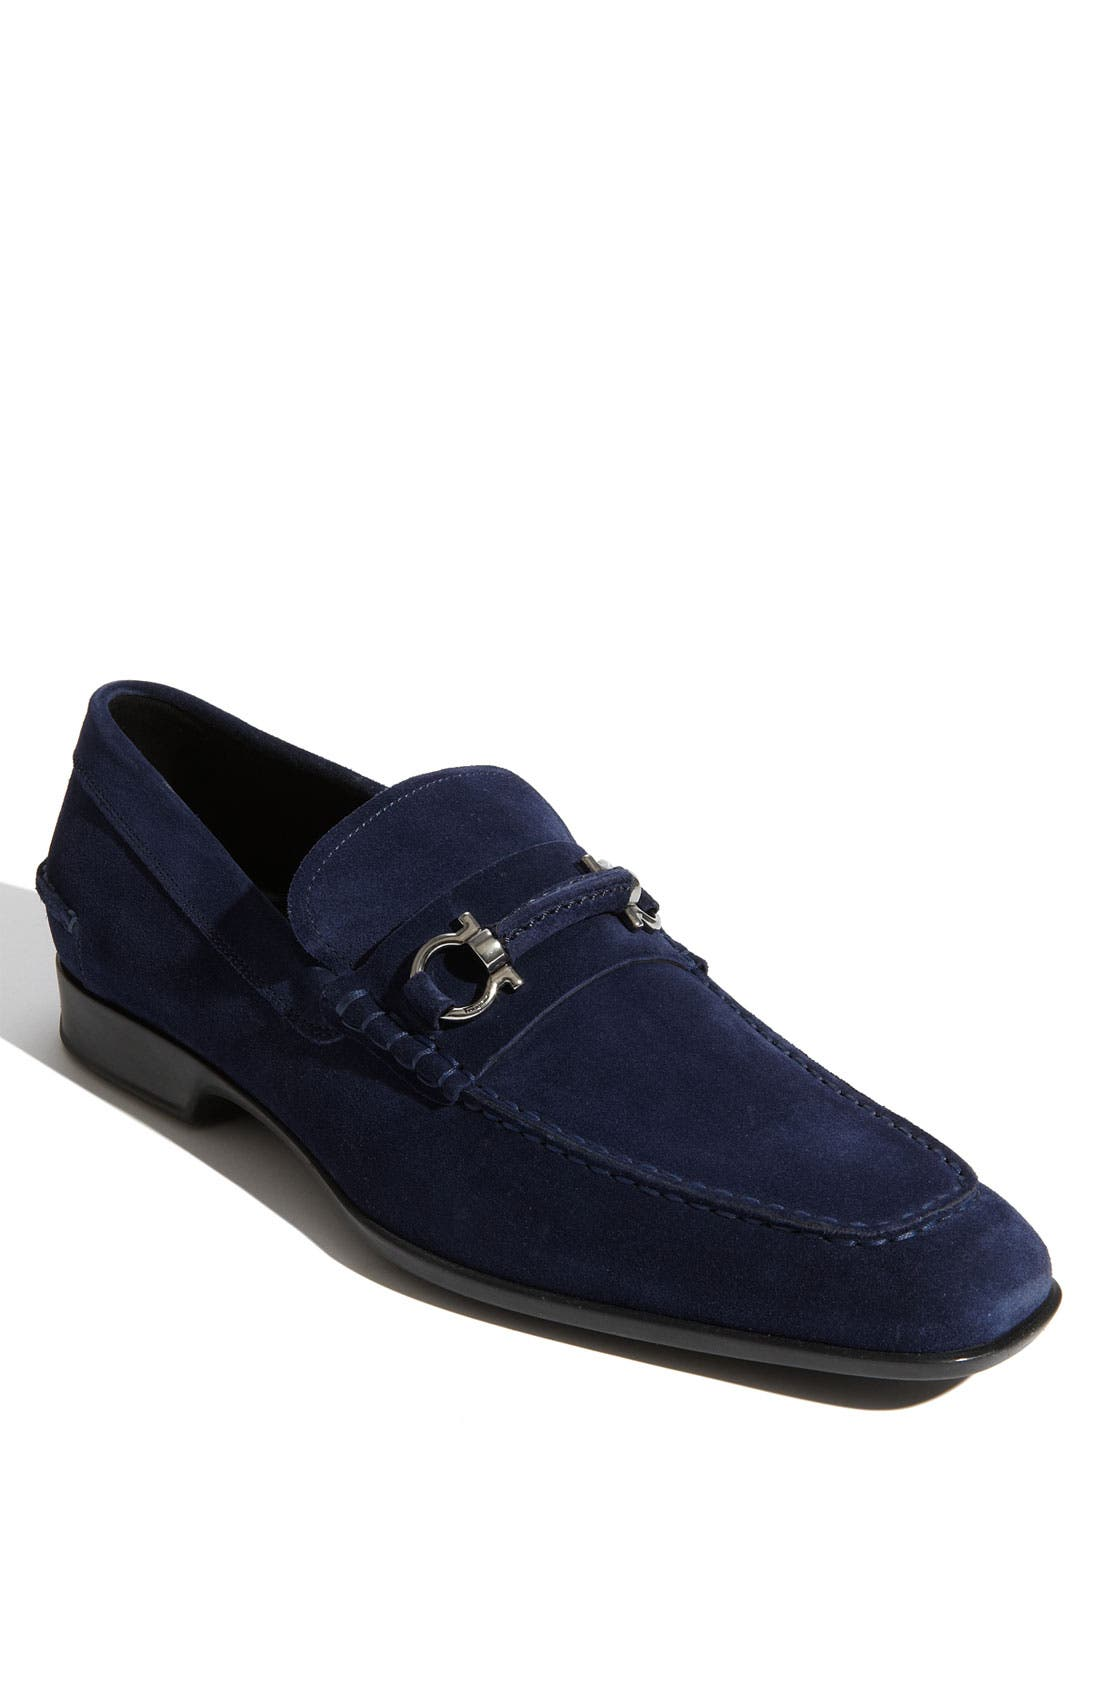 Alternate Image 1 Selected - Salvatore Ferragamo 'Cantino' Slip-On